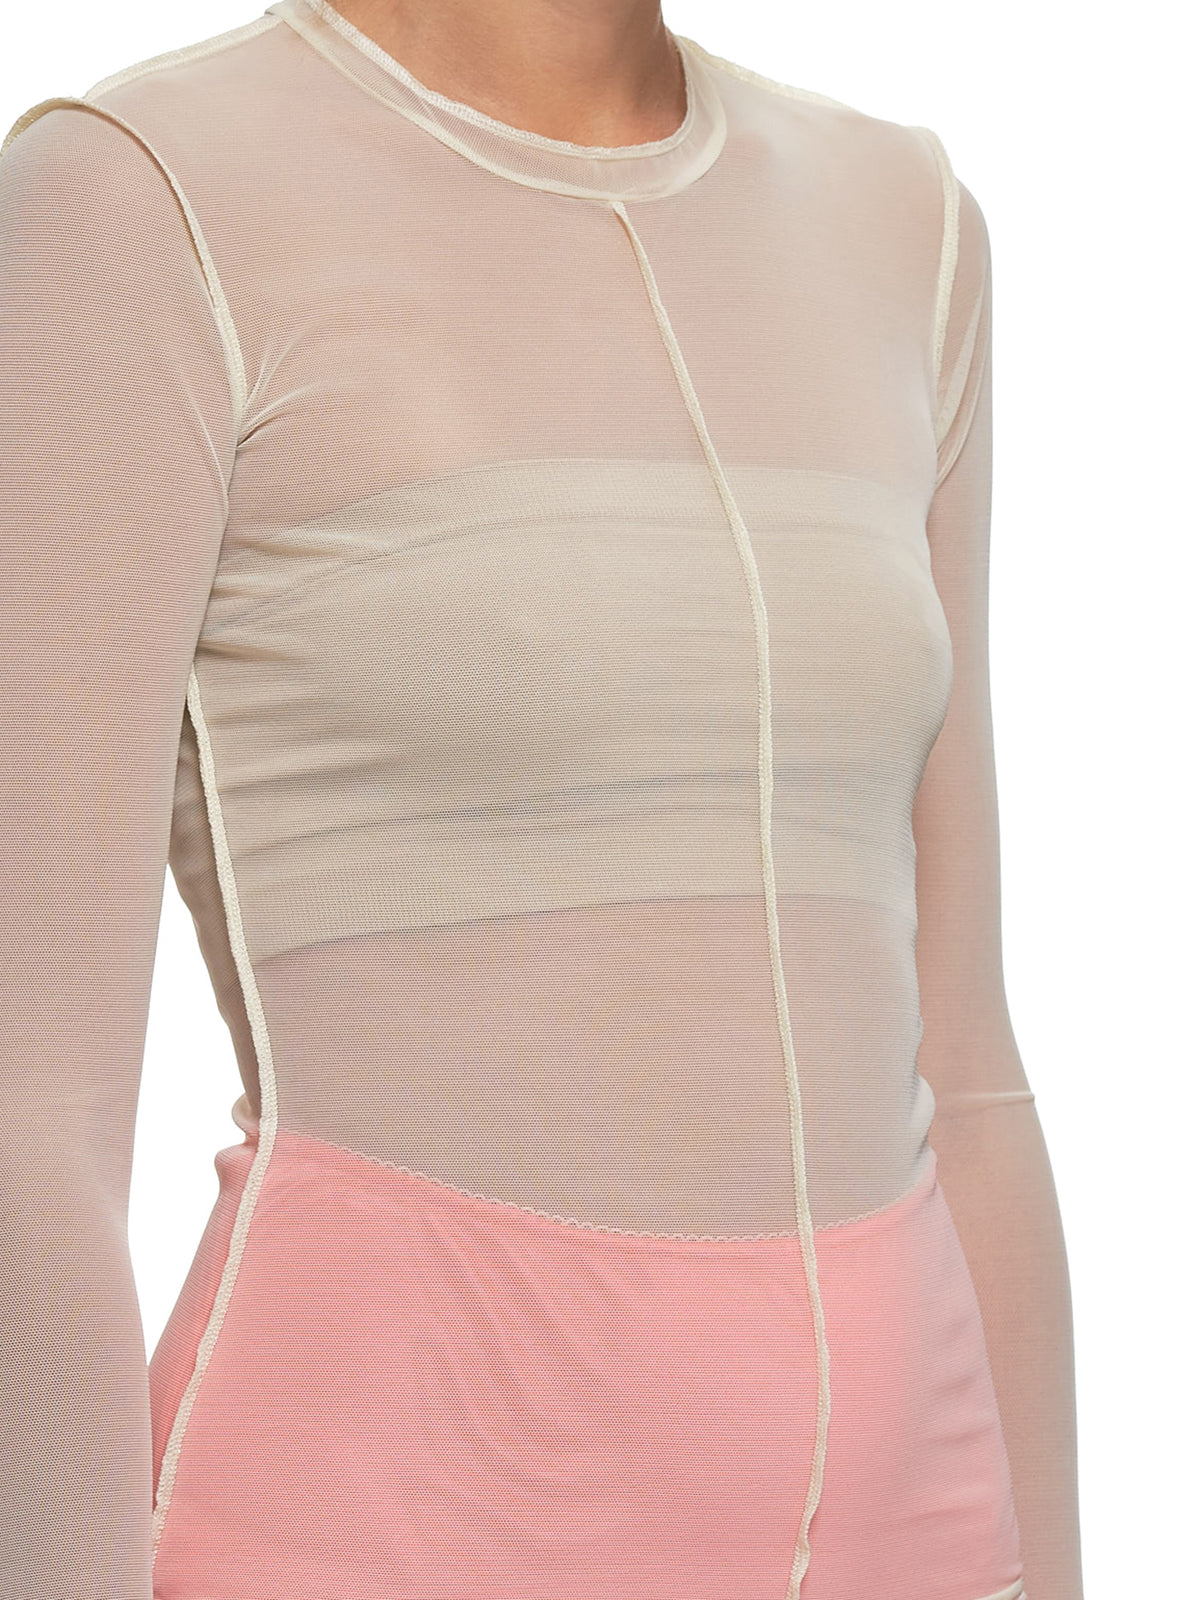 Mesh Top (#001041-#003-IVORY)